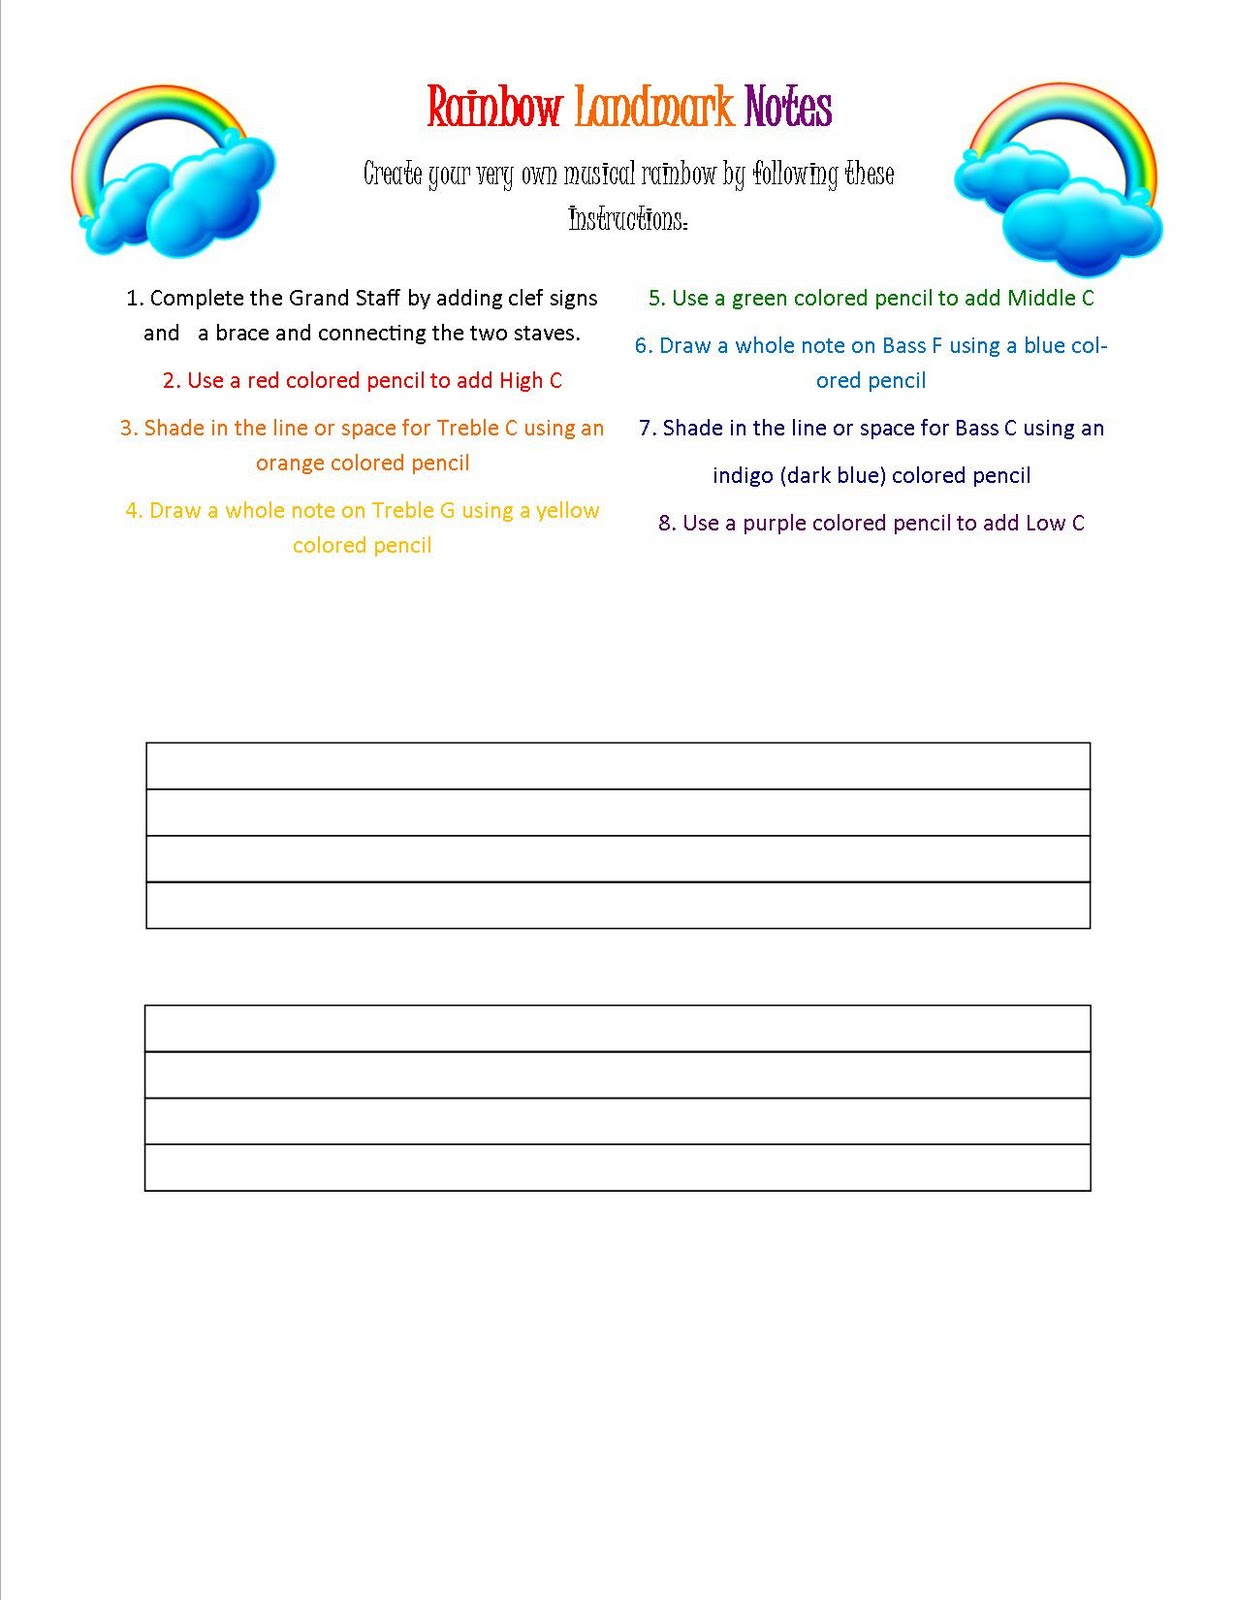 Discoveries Piano Studio Rainbow Landmark Note Worksheet